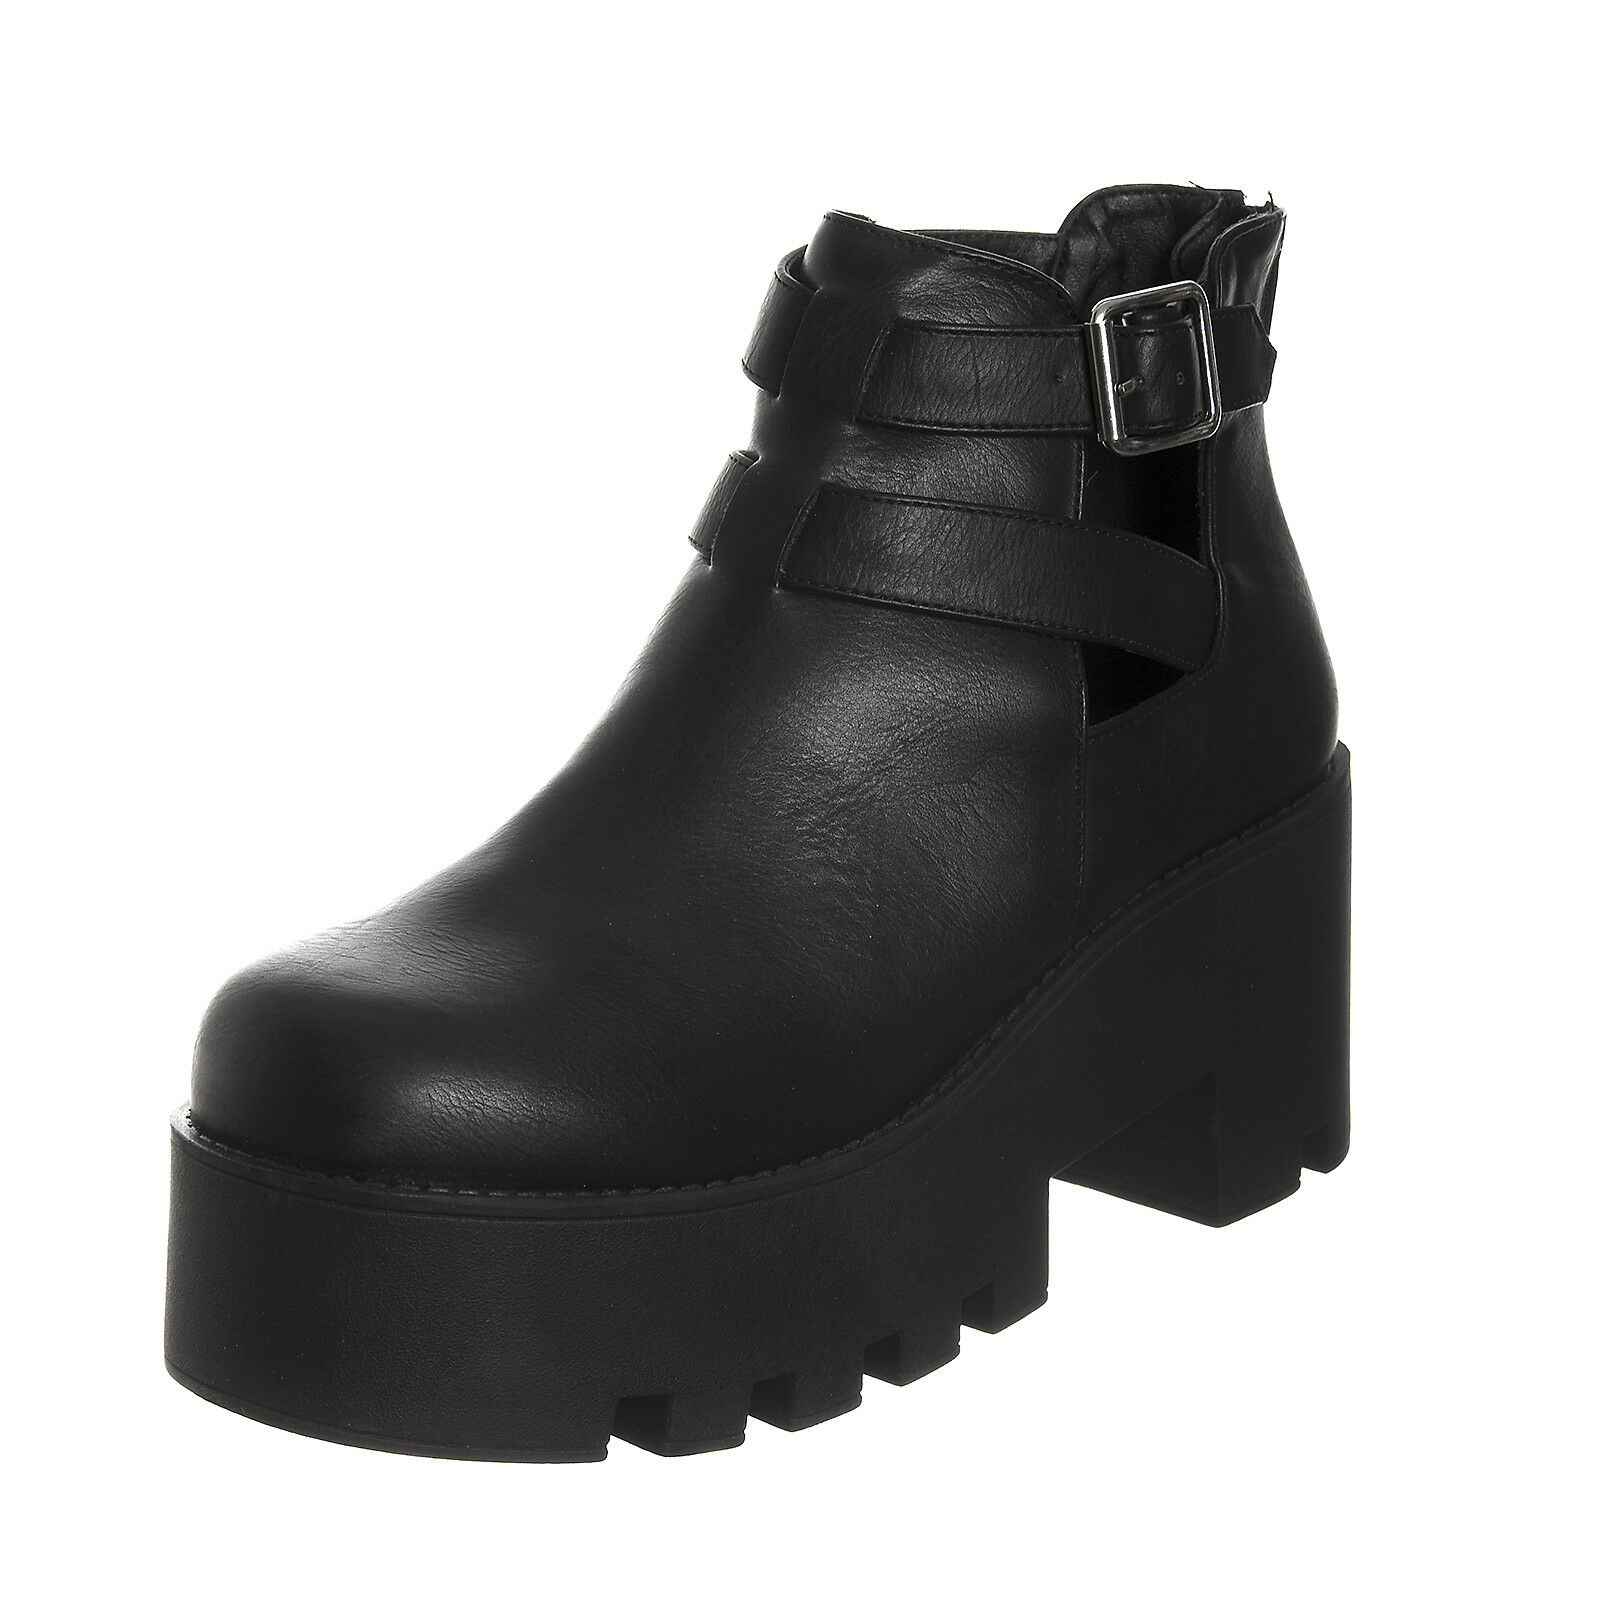 Lipstick shoes ankle boot Puffy-3 Black Black